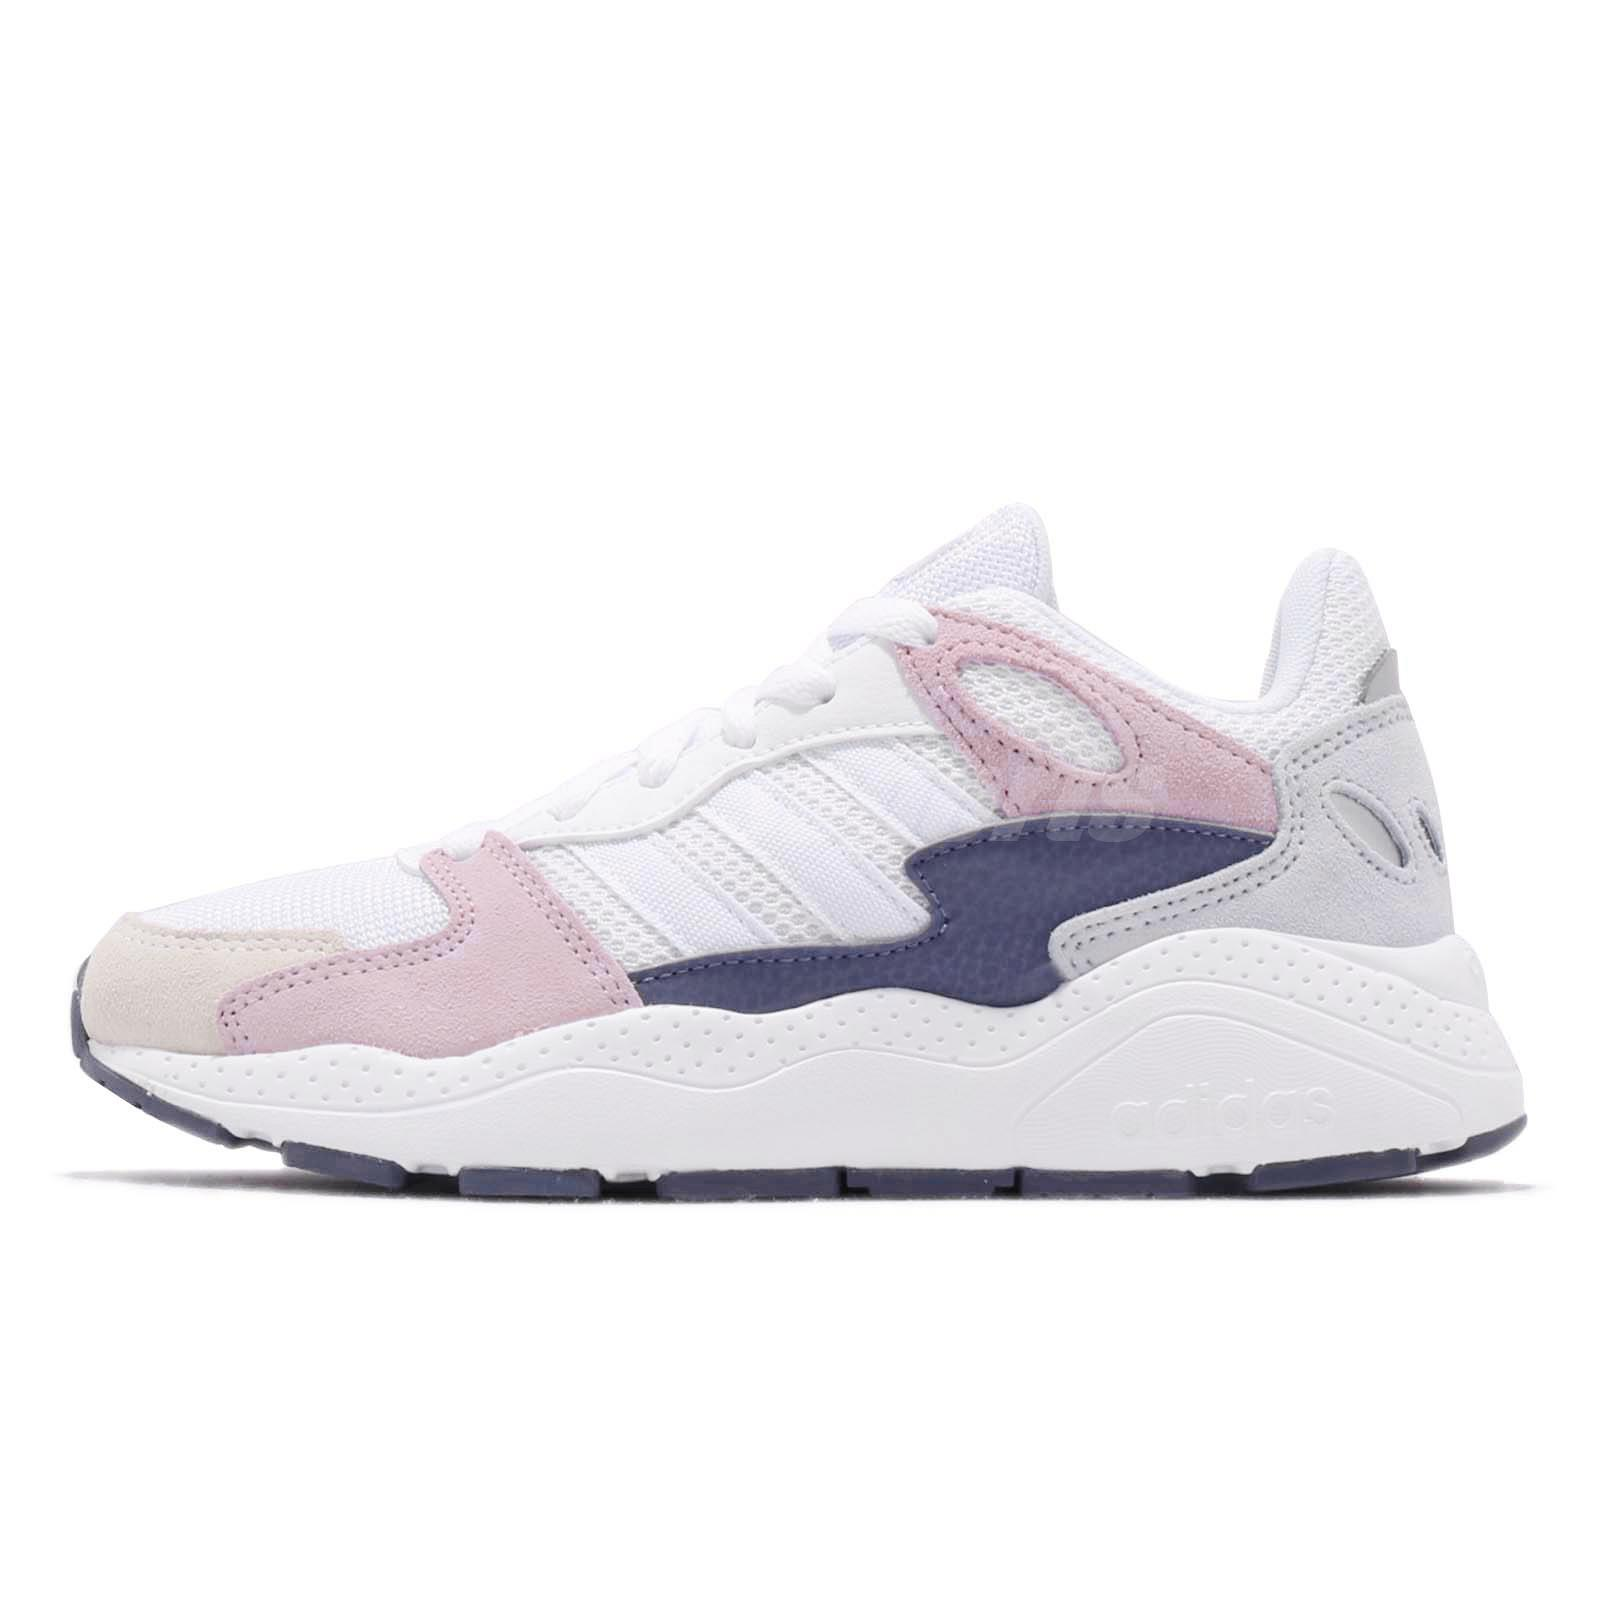 Details about adidas Chaos White Aero Pink Grey Women Running Casual Shoes Sneakers EF1049